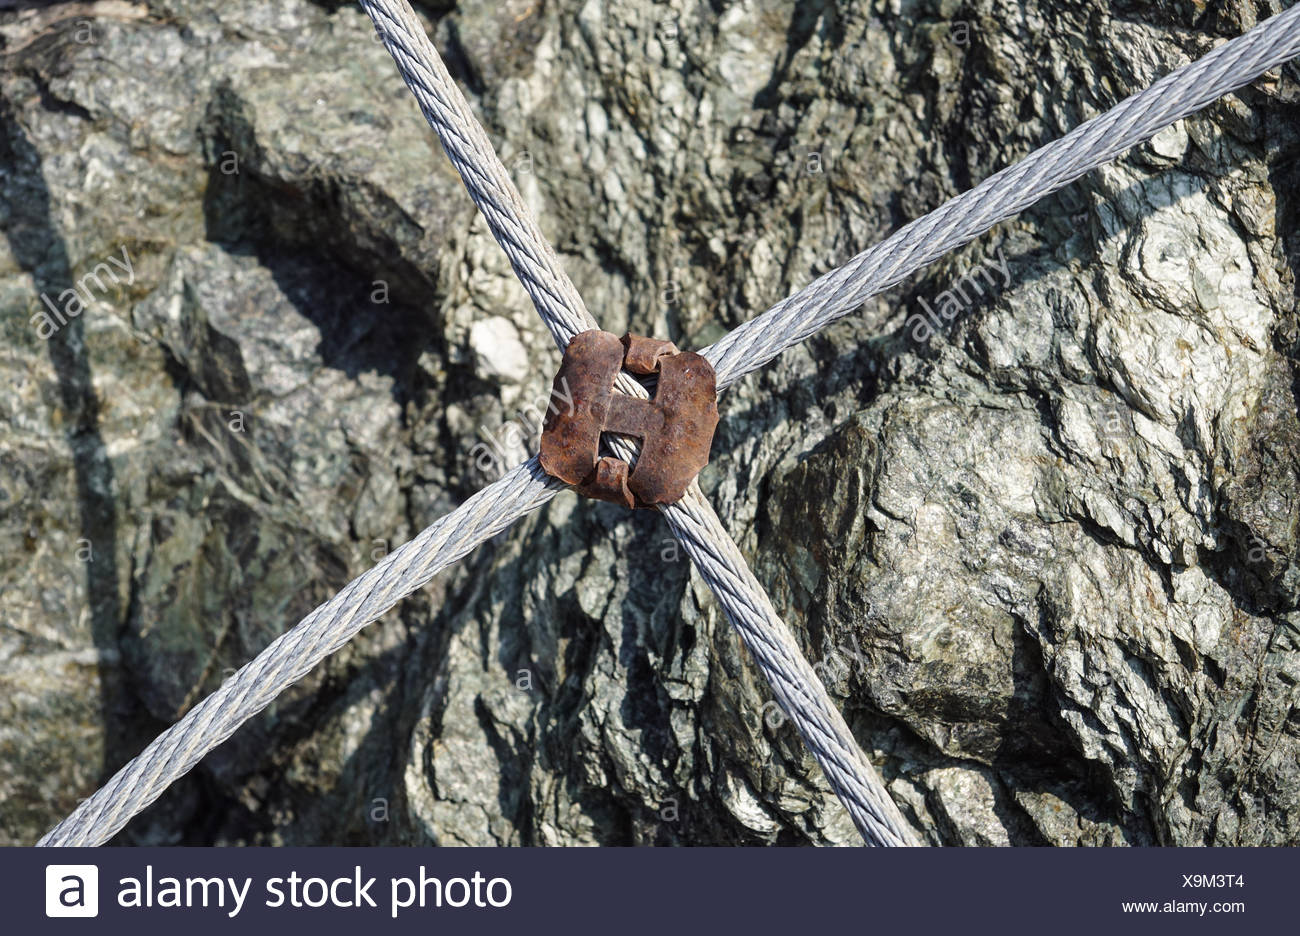 Cable Clamp Stock Photos & Cable Clamp Stock Images - Alamy